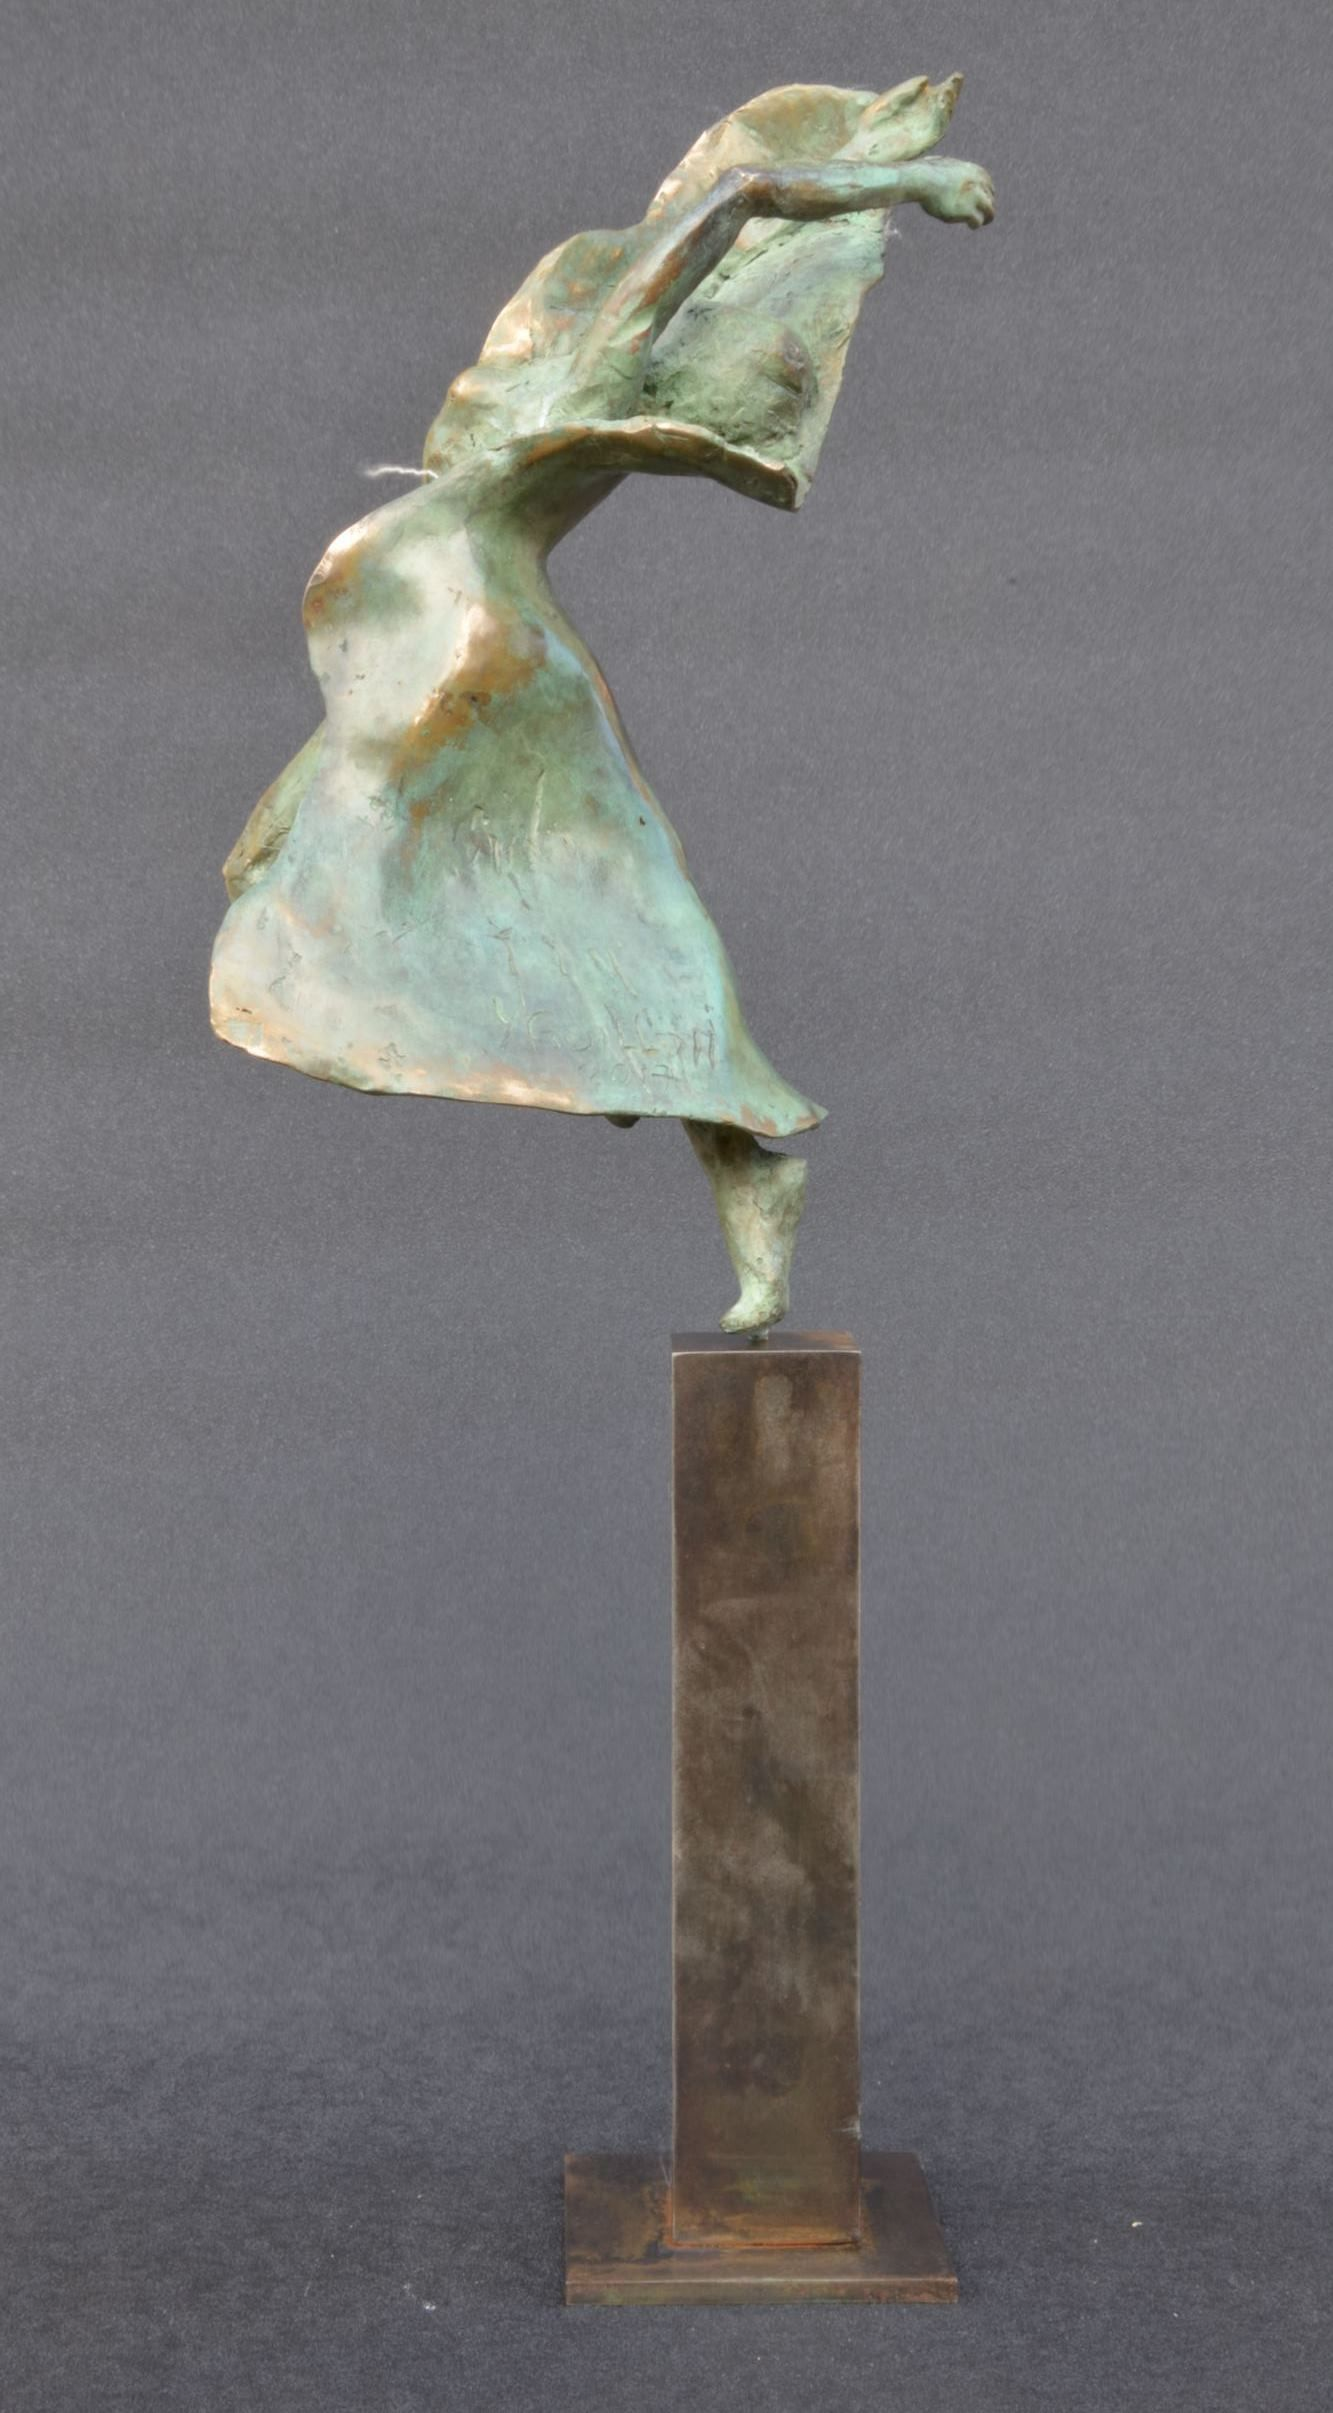 Danseuse moderne III,Yann Guillon,Sculpture contemporaine